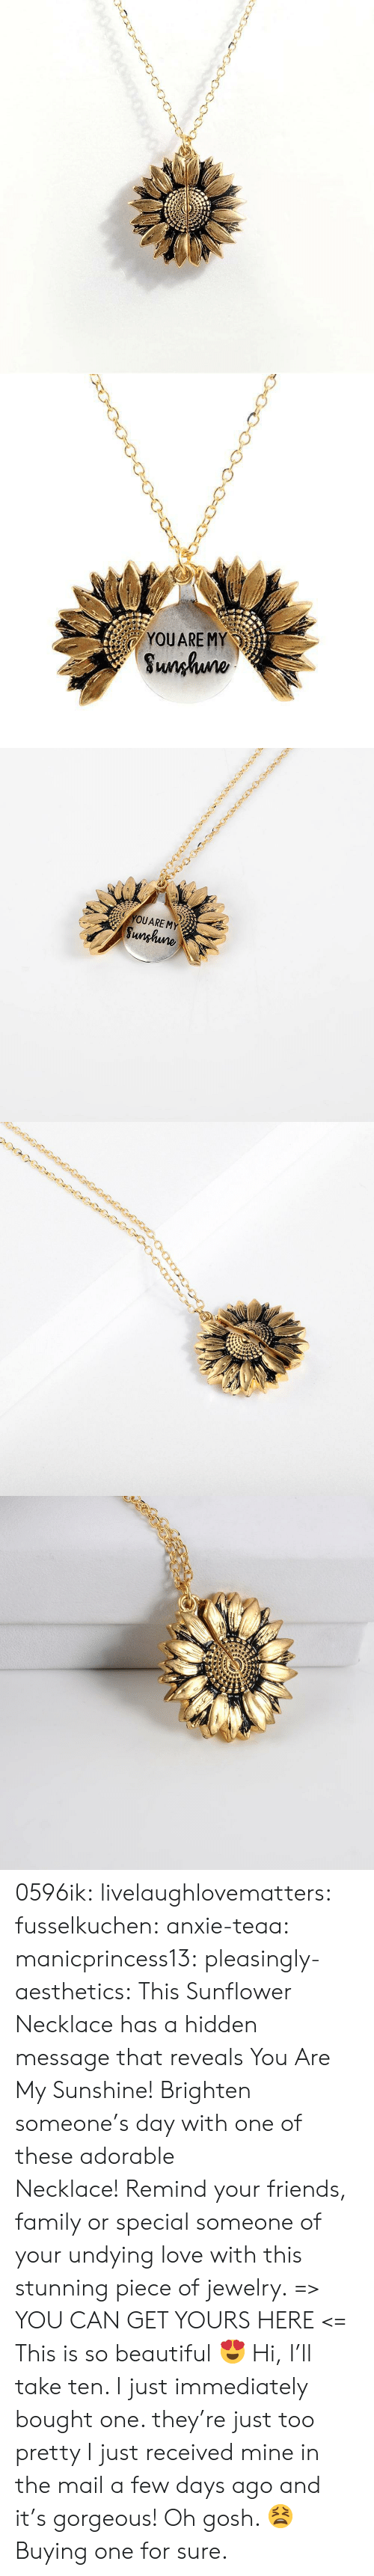 Beautiful, Family, and Friends: YOUARE MY  Sunhuno   YOUARE MY  Sunghune 0596ik:  livelaughlovematters:  fusselkuchen: anxie-teaa:   manicprincess13:   pleasingly-aesthetics:  This Sunflower Necklace has a hidden message that reveals You Are My Sunshine! Brighten someone's day with one of these adorable Necklace! Remind your friends, family or special someone of your undying love with this stunning piece of jewelry. => YOU CAN GET YOURS HERE <=   This is so beautiful 😍    Hi, I'll take ten.    I just immediately bought one. they're just too pretty   I just received mine in the mail a few days ago and it's gorgeous!  Oh gosh. 😫 Buying one for sure.